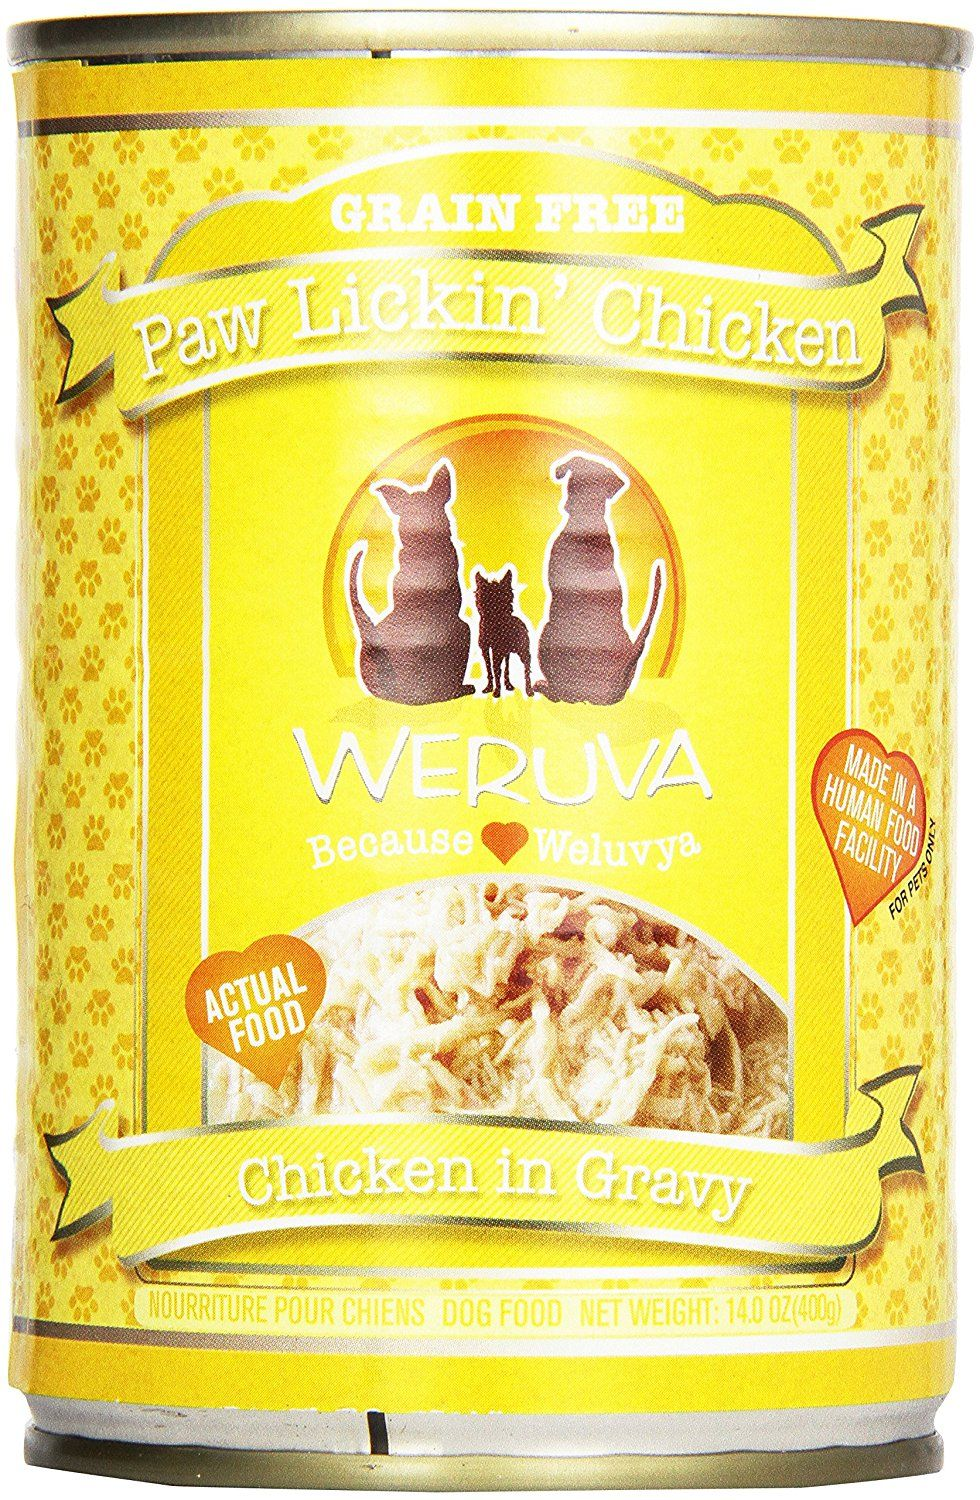 Weruva Canned Dog Food Paw Lickin Chicken In Gravy 14 Oz Read More At The Image Link This Is An Affiliate Link Dog Food Recipes Canned Dog Food Food